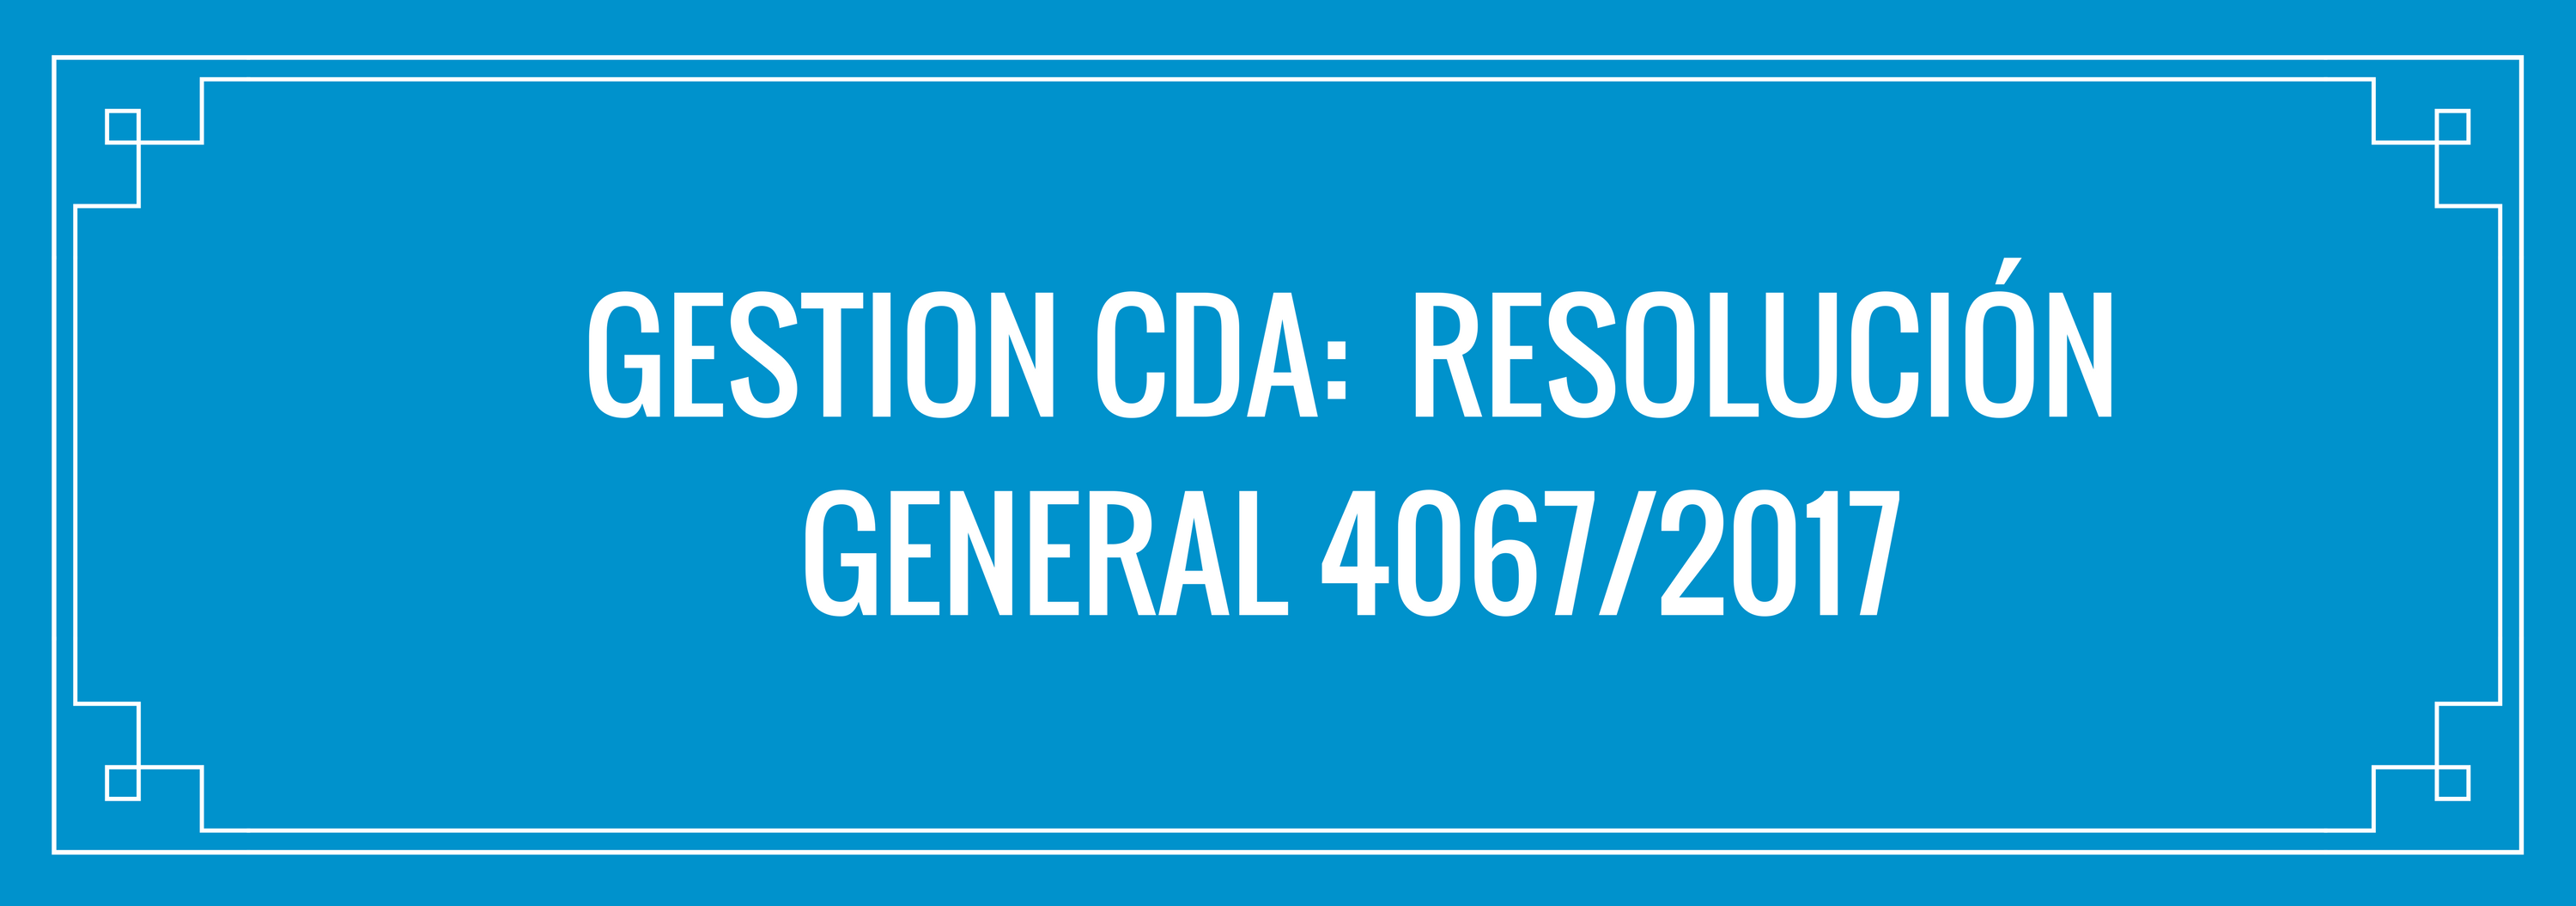 GESTION CDA:  Resolución General 4067/2017